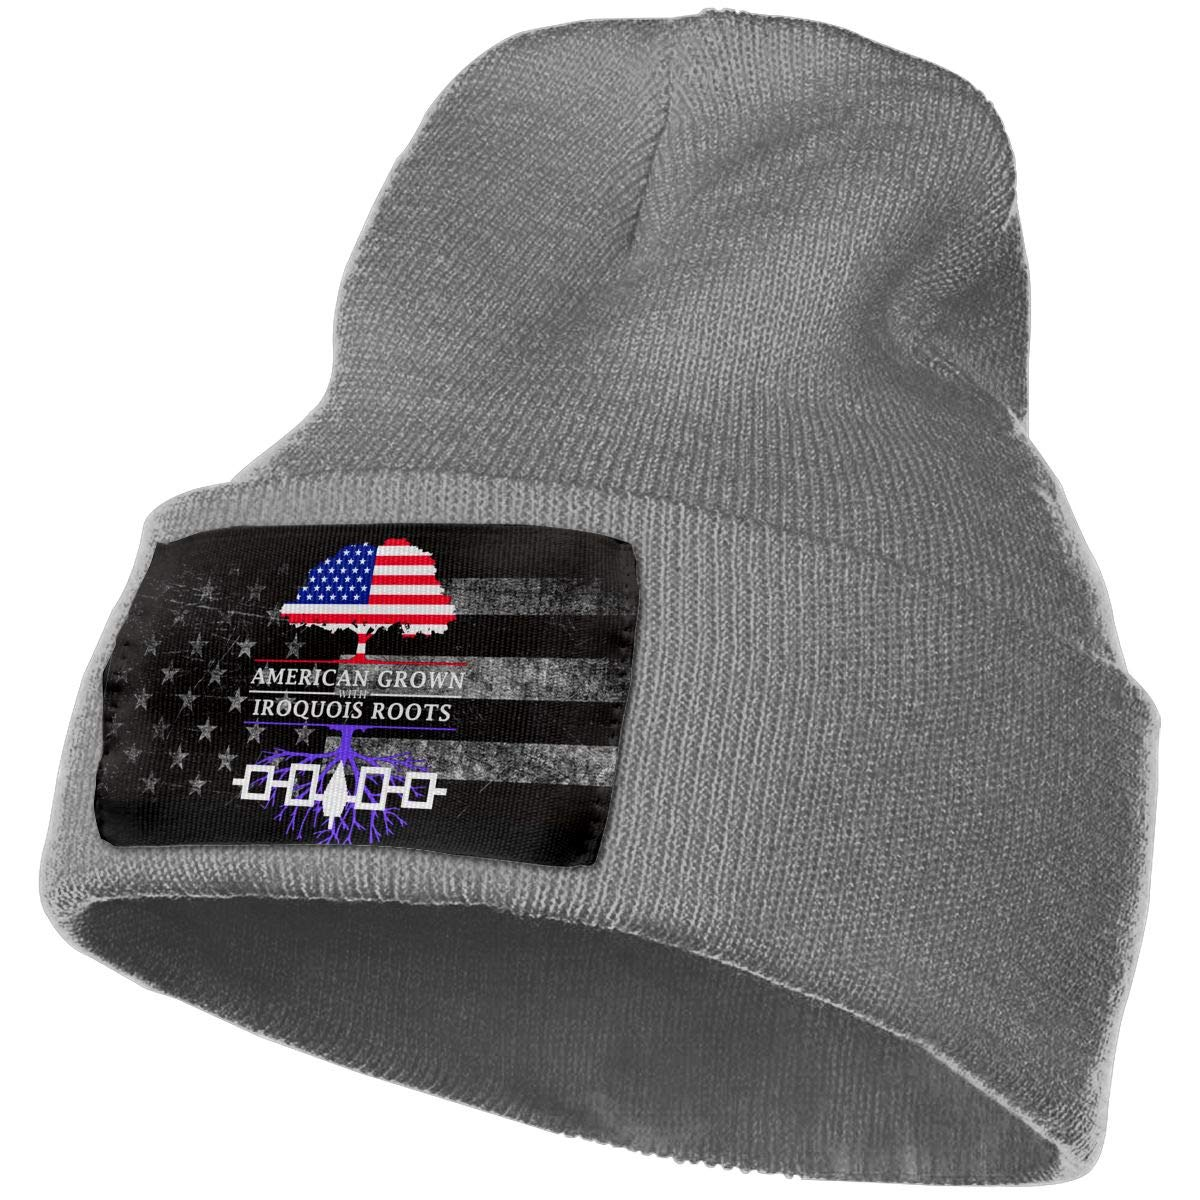 FORDSAN CP American Grown with Iroquois Roots Mens Beanie Cap Skull Cap Winter Warm Knitting Hats.